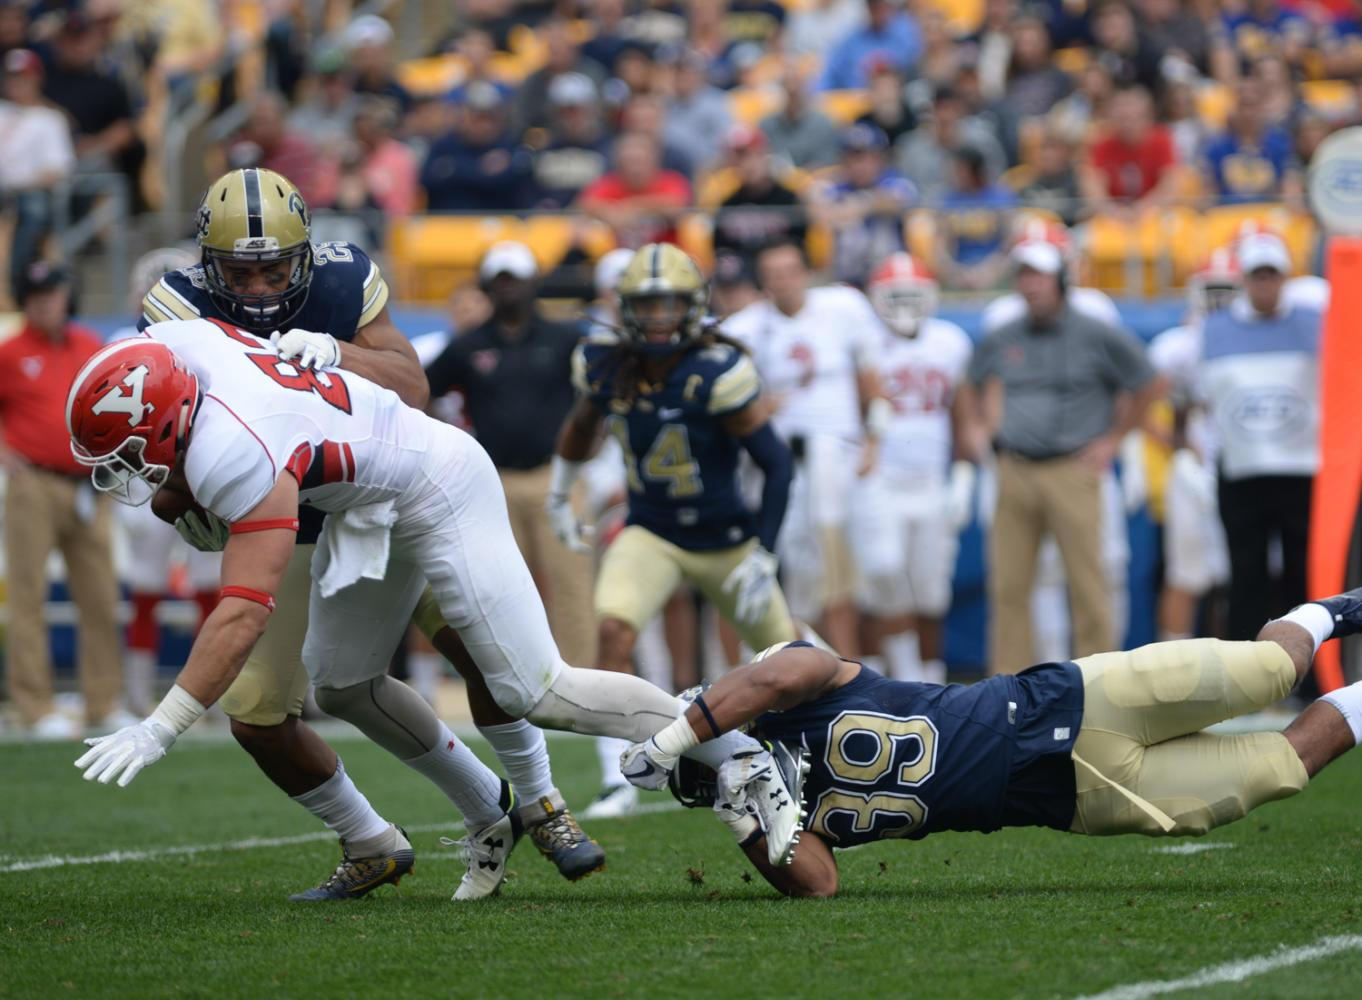 Pitt linebacker Saleem Brightwell (#39)  and Elijah Zeise (#25) tackle YSU player in Saturday, Sept. 2, game against the Penguins. (Photo by Anna Bongardino | Assistant Visual Editor)